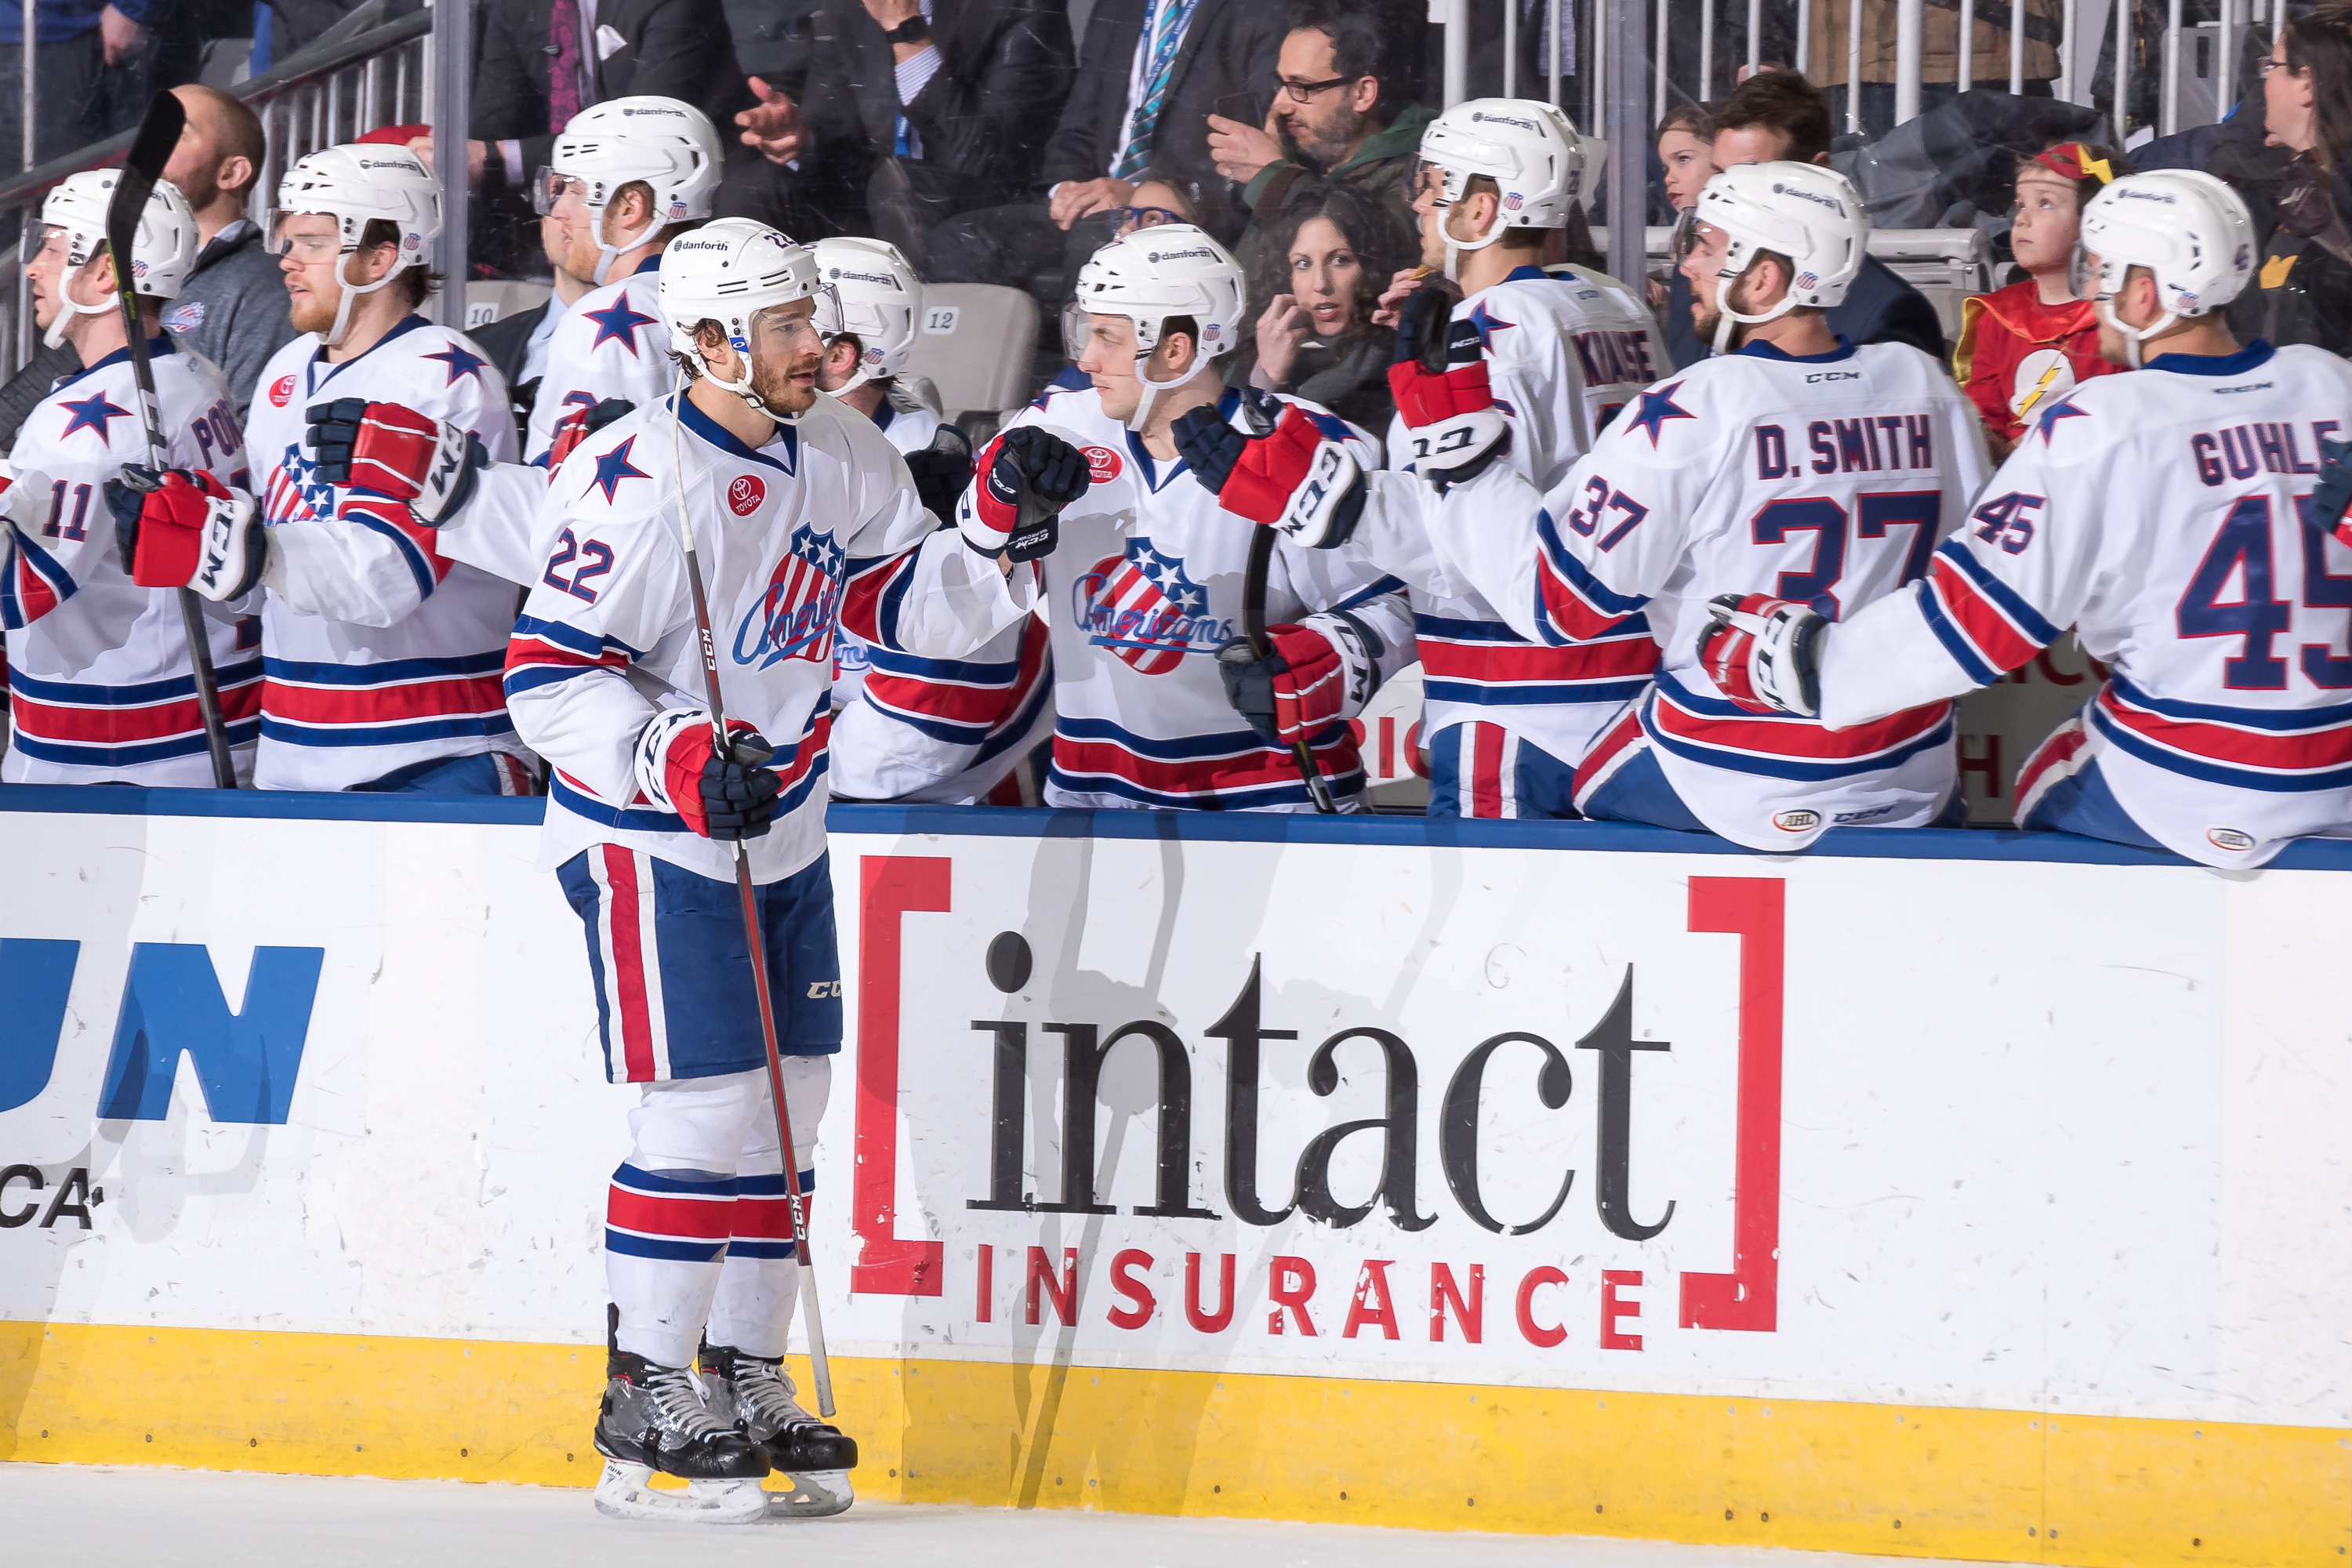 Amerks Walked Over the Marlies